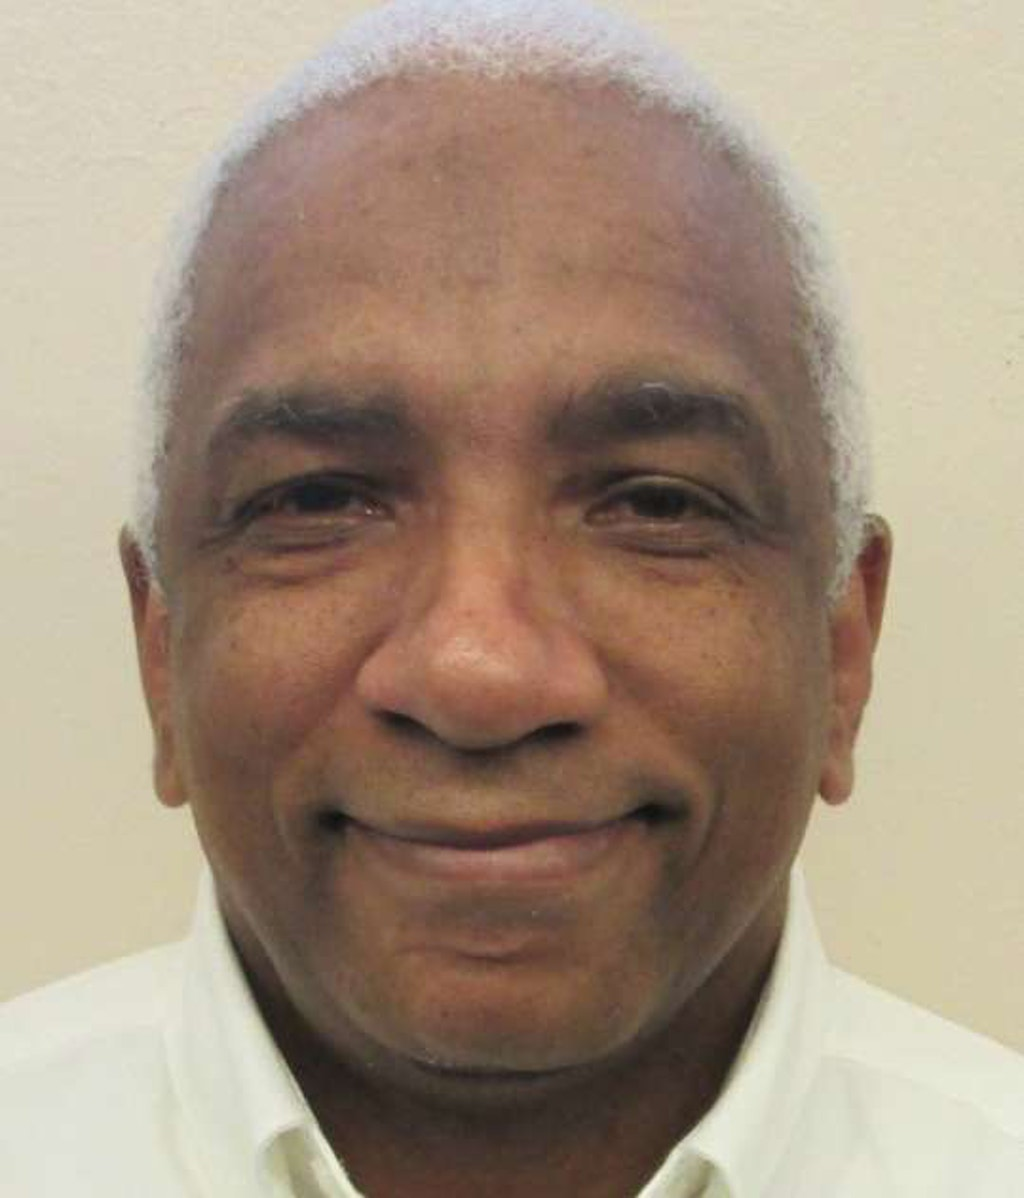 U.S. Supreme Court Rules in Favor of Alabama Death-Row Prisoner in McWilliams v. Dunn